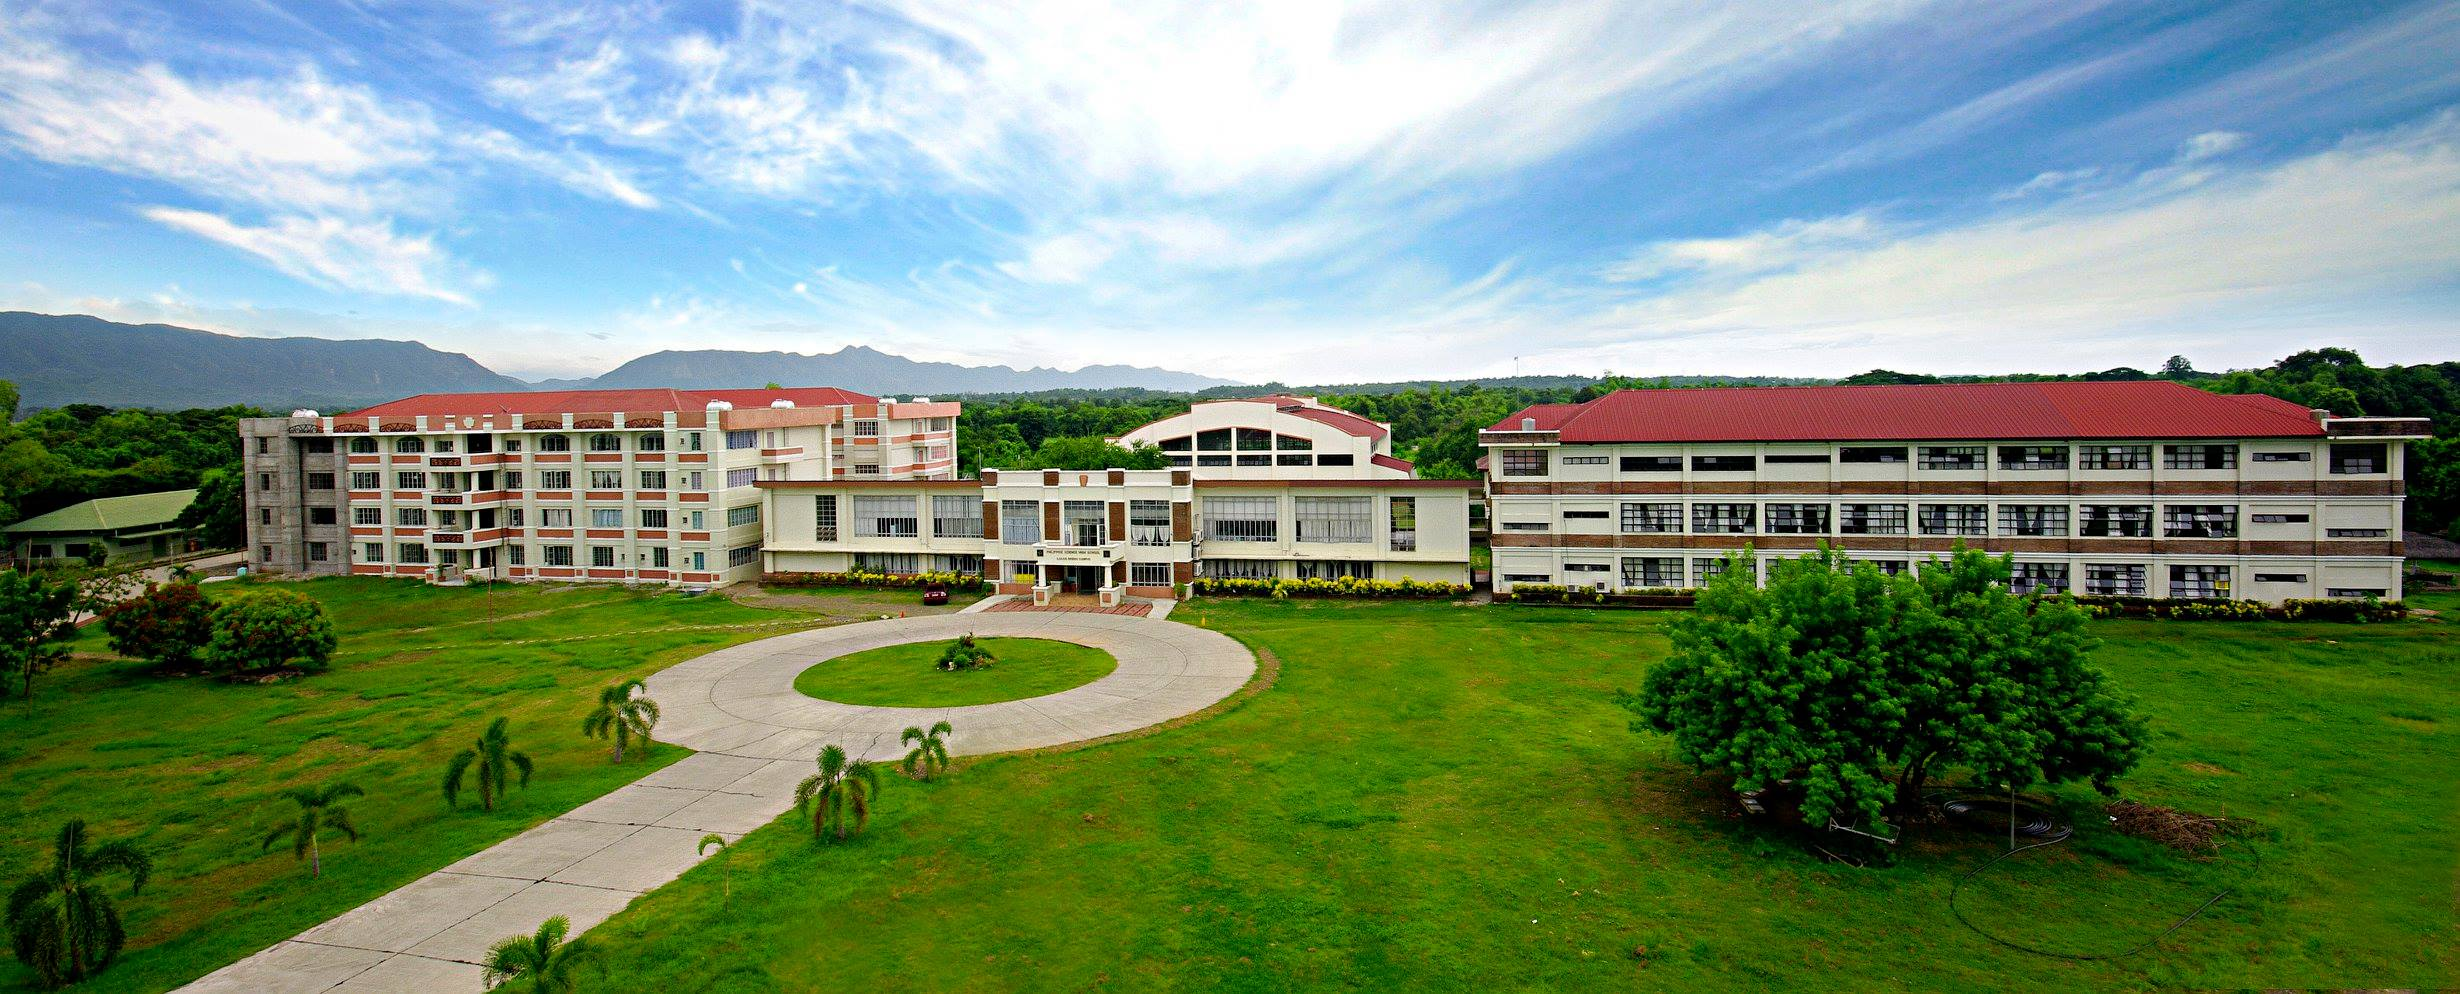 Philippine Science High School Ilocos Region Campus